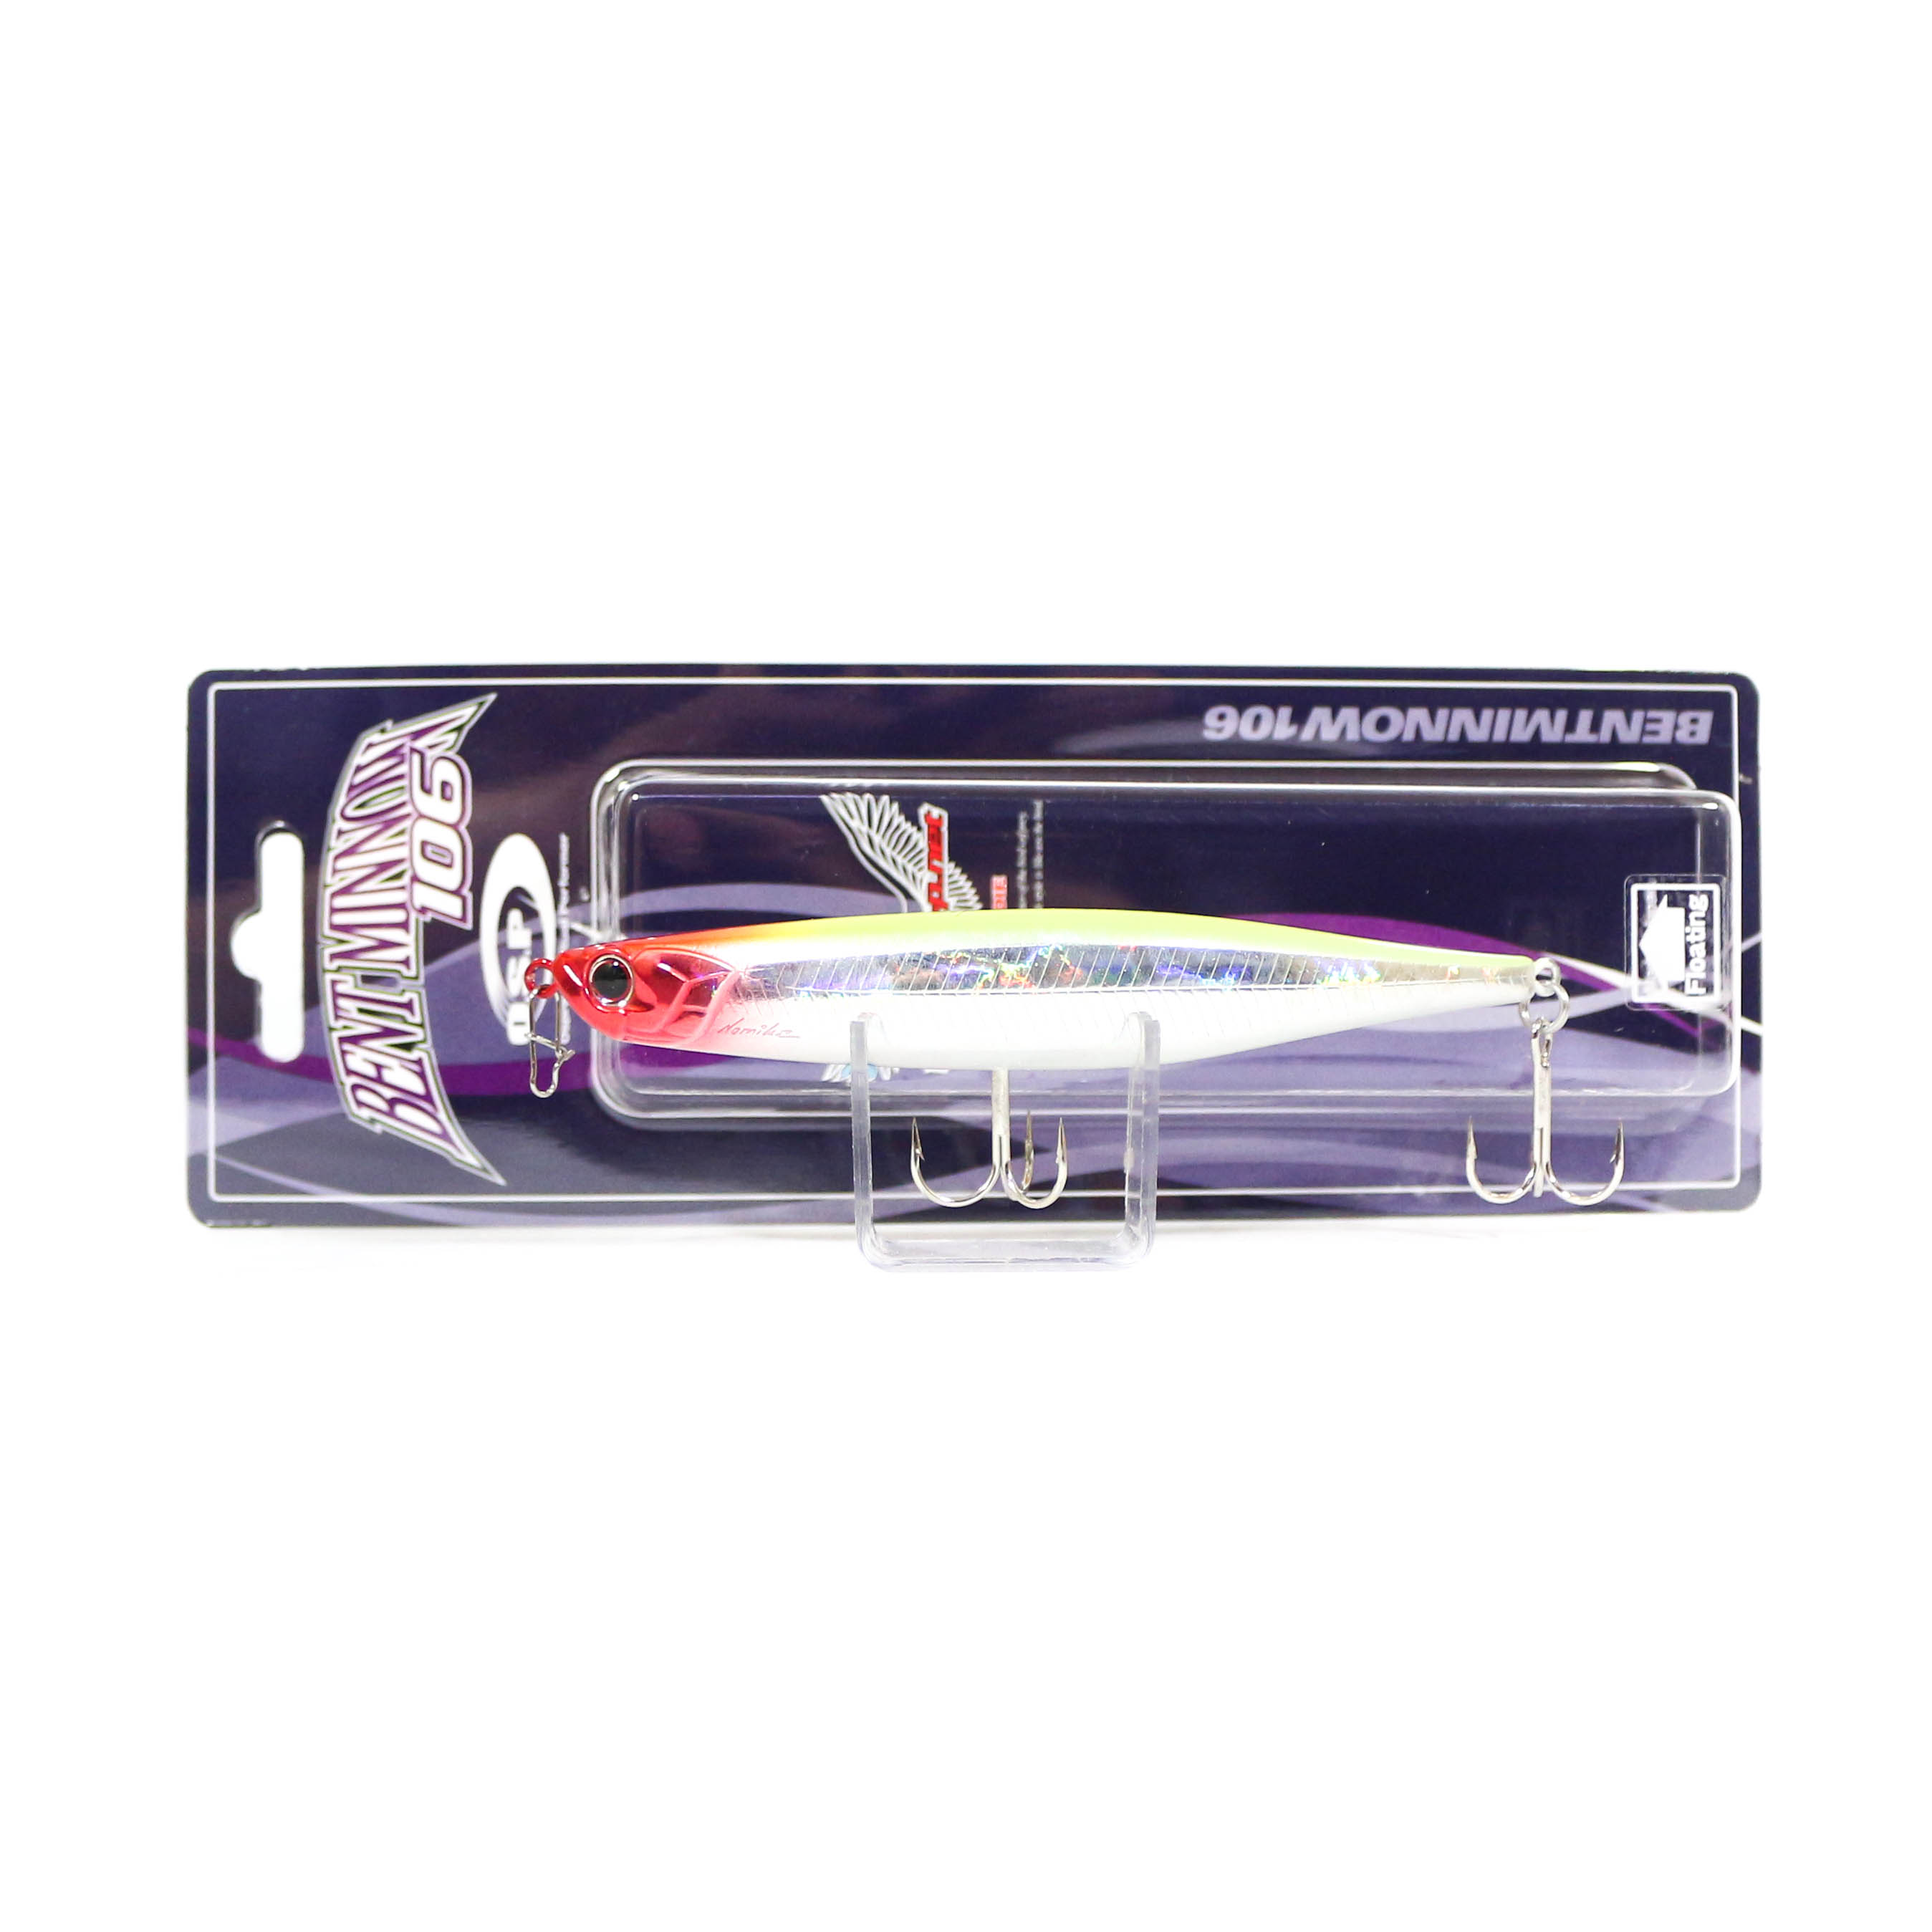 OSP Bent Minnow 106F Floating Minnow Lure H-59 (7416)